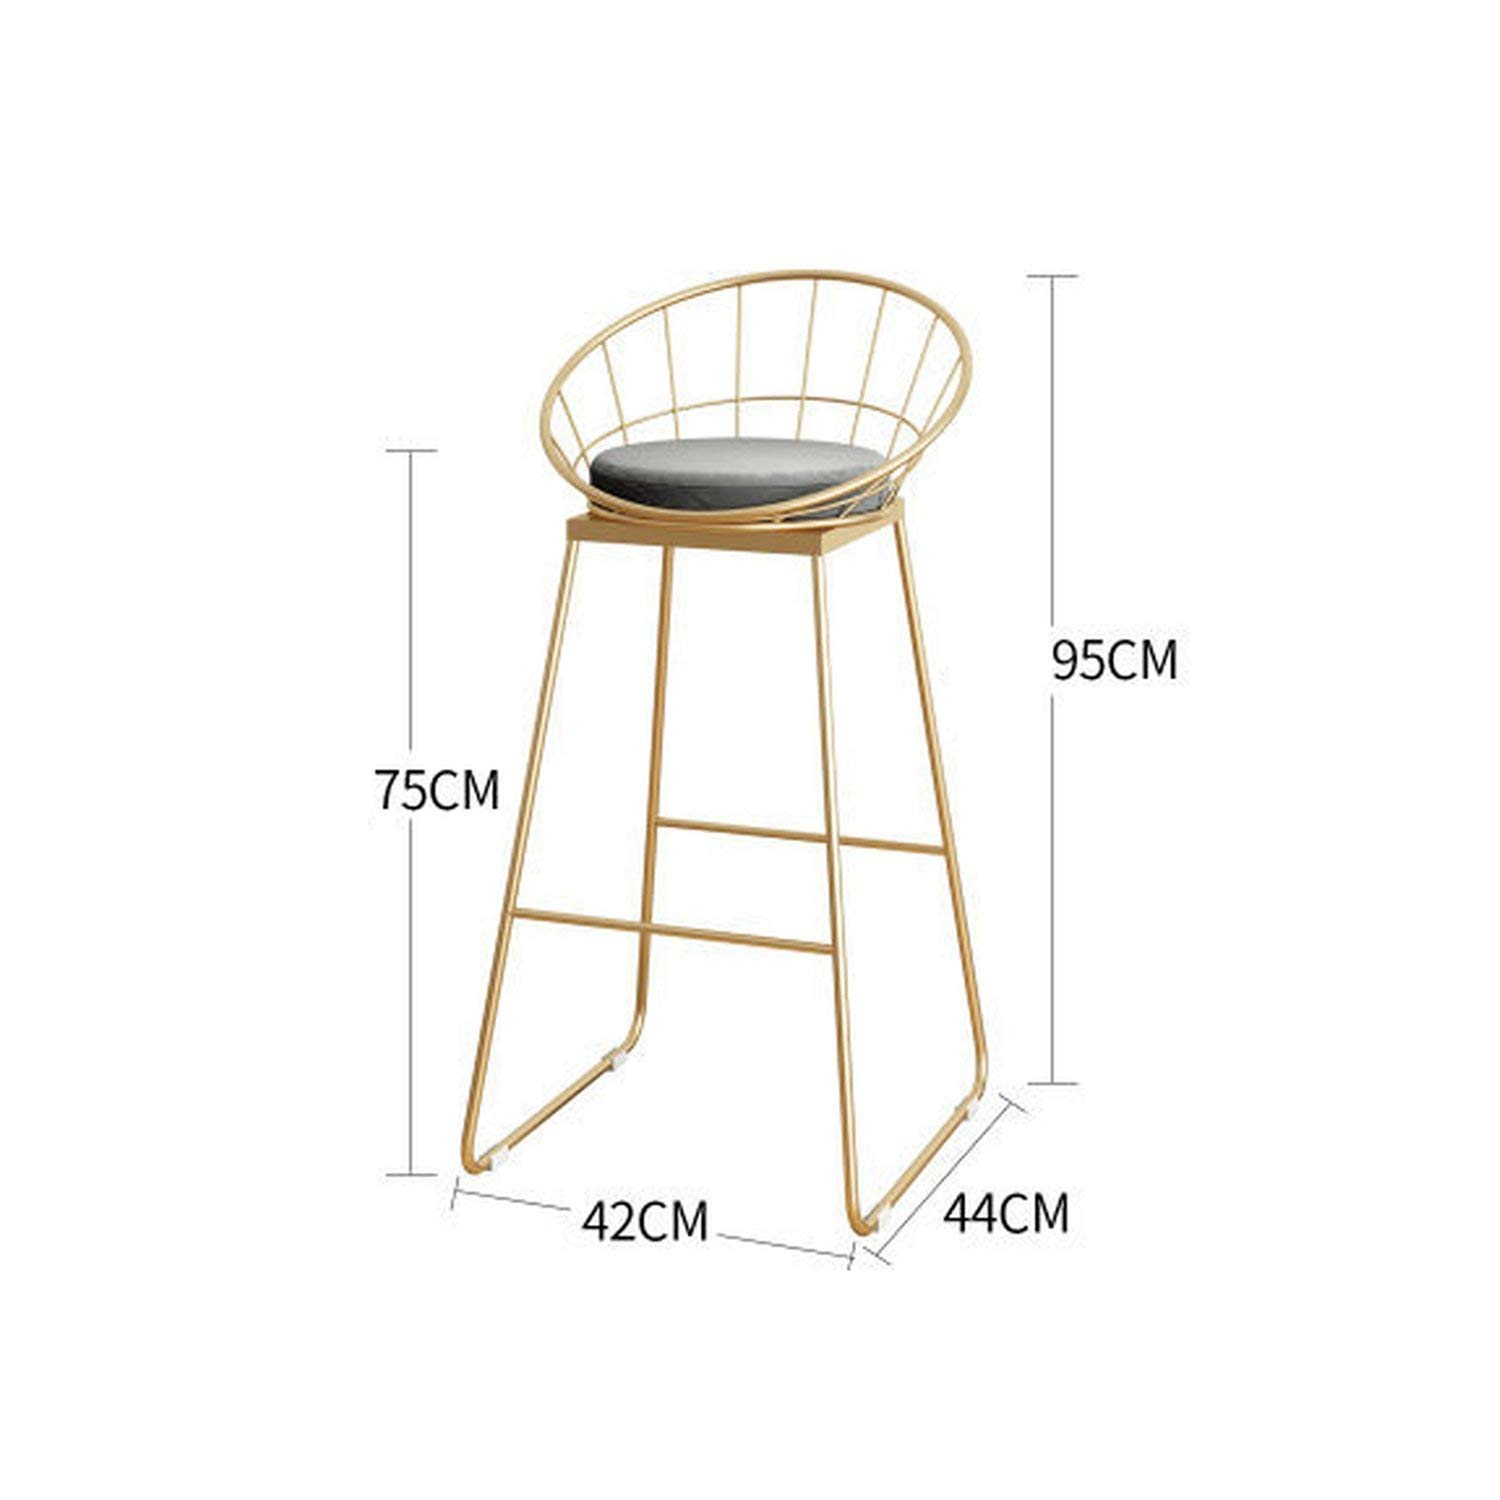 A-gold-75cm tthappy76 Simple Bar Stool Wrought Iron Bar Chair gold High Stool Modern Dining Chair Iron Leisure Chair Nordic,C-gold-75Cm